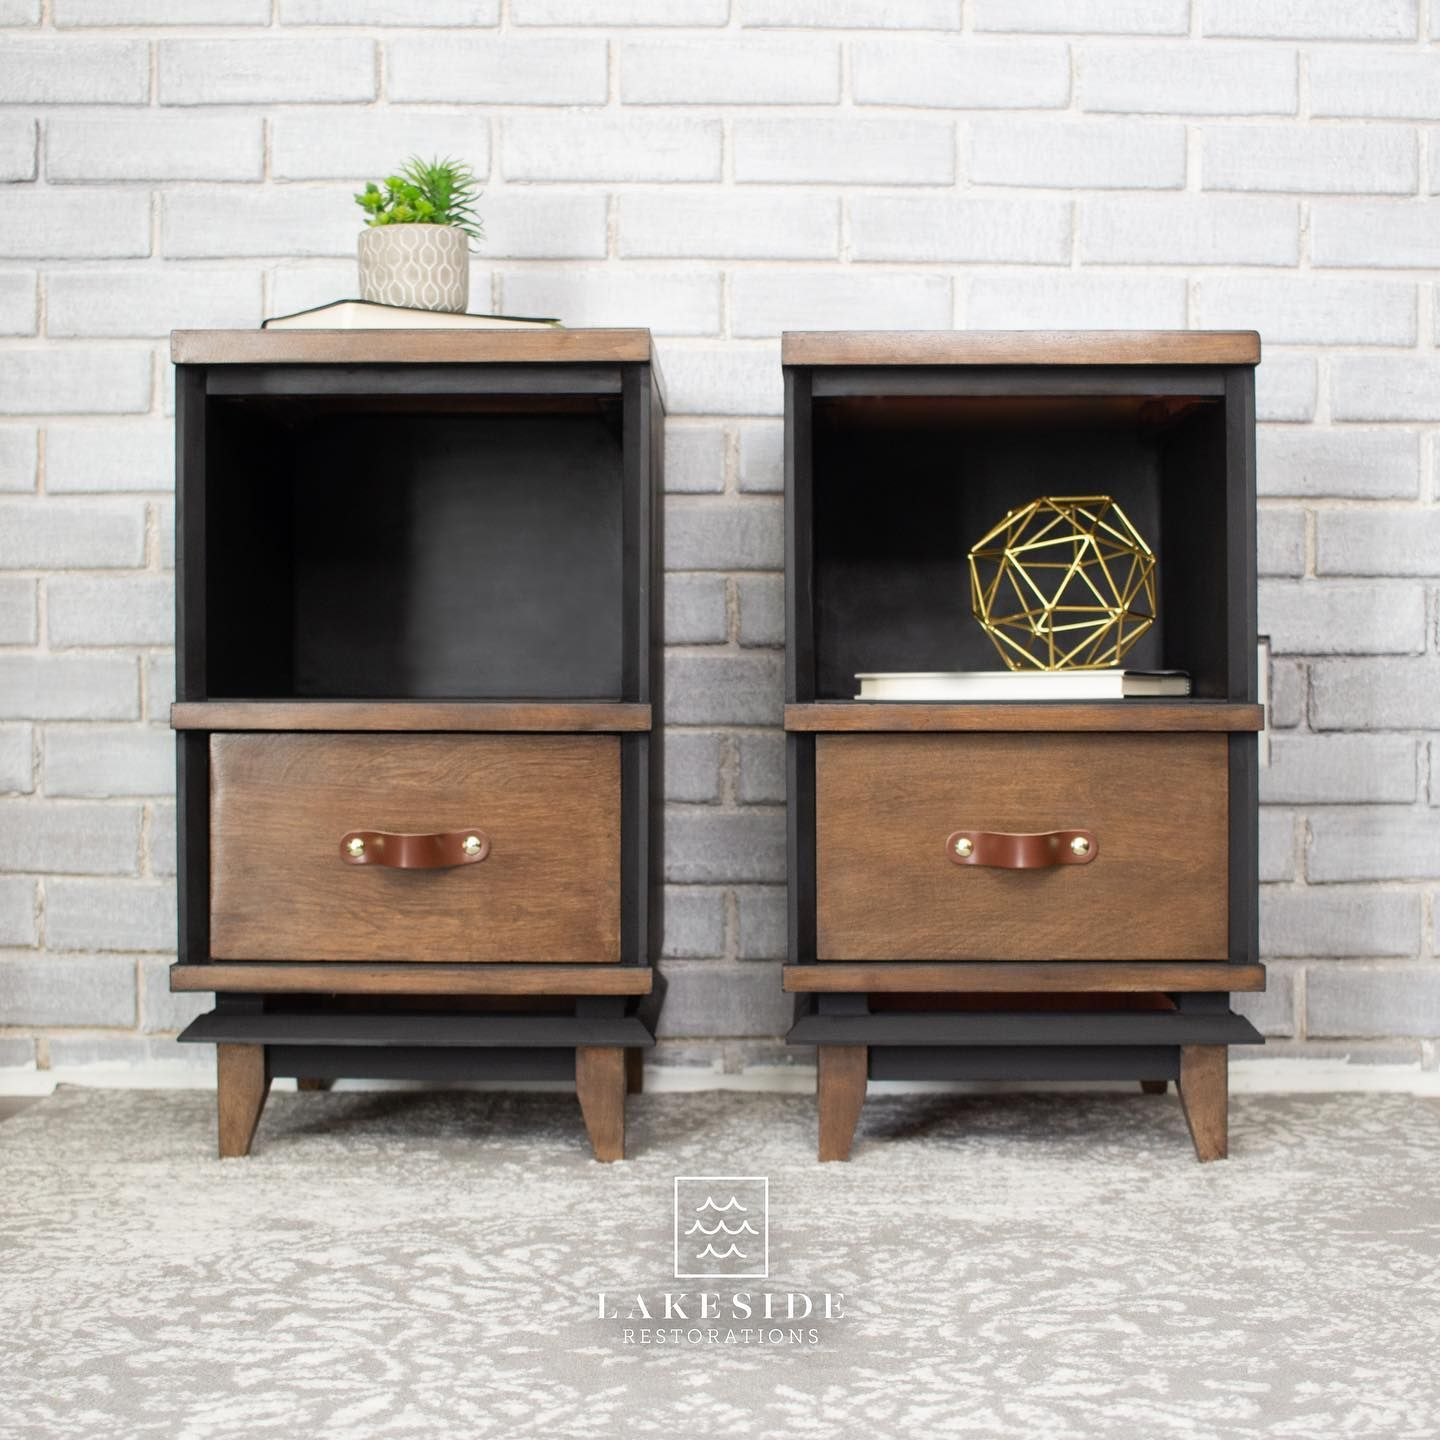 Pair of Accent/Storage Tables in Liquorice with Stained Wood Drawers and Top